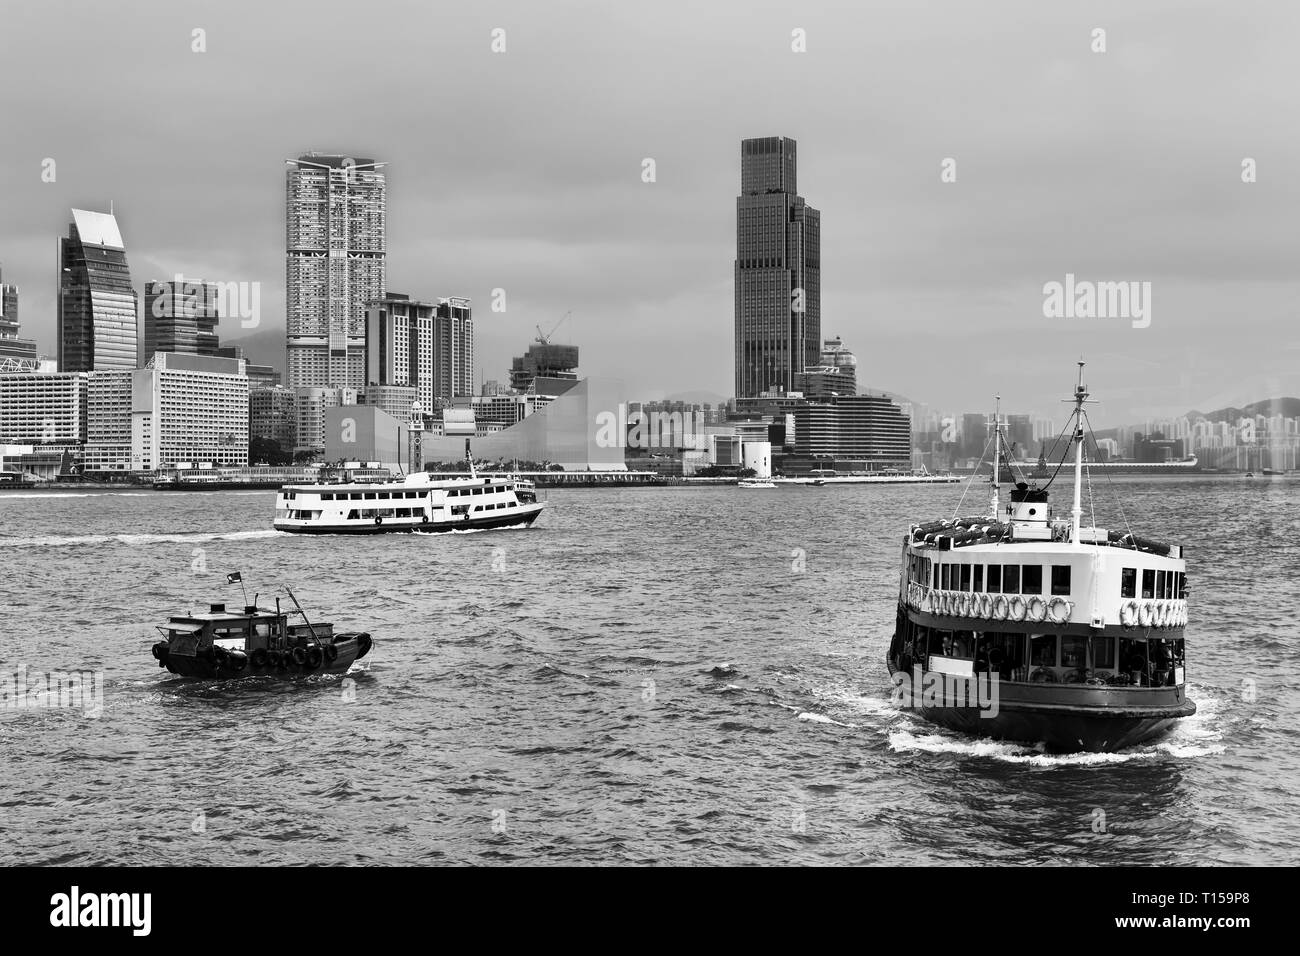 Passenger ferry connecting Hong Kong island with Kowloon and Thim Sha Tsui mainland shores across Victoria Harbour in Honk Kong city. - Stock Image